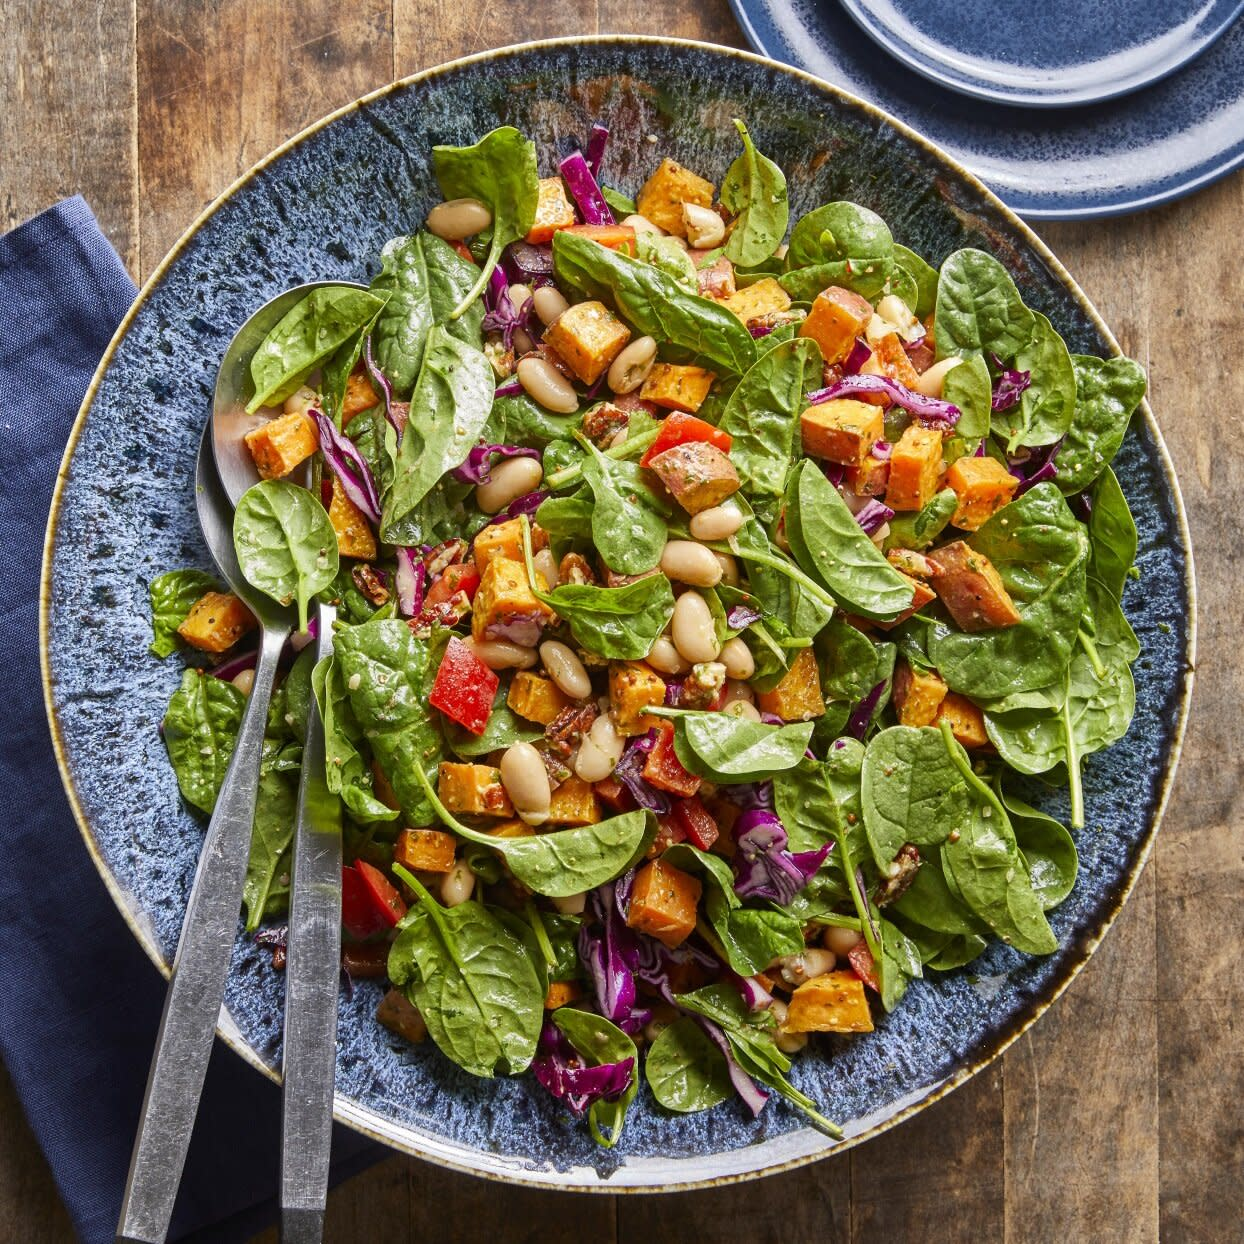 Can You Follow a Plant-Based Diet if You Have Diabetes? Here's What You Need to Know